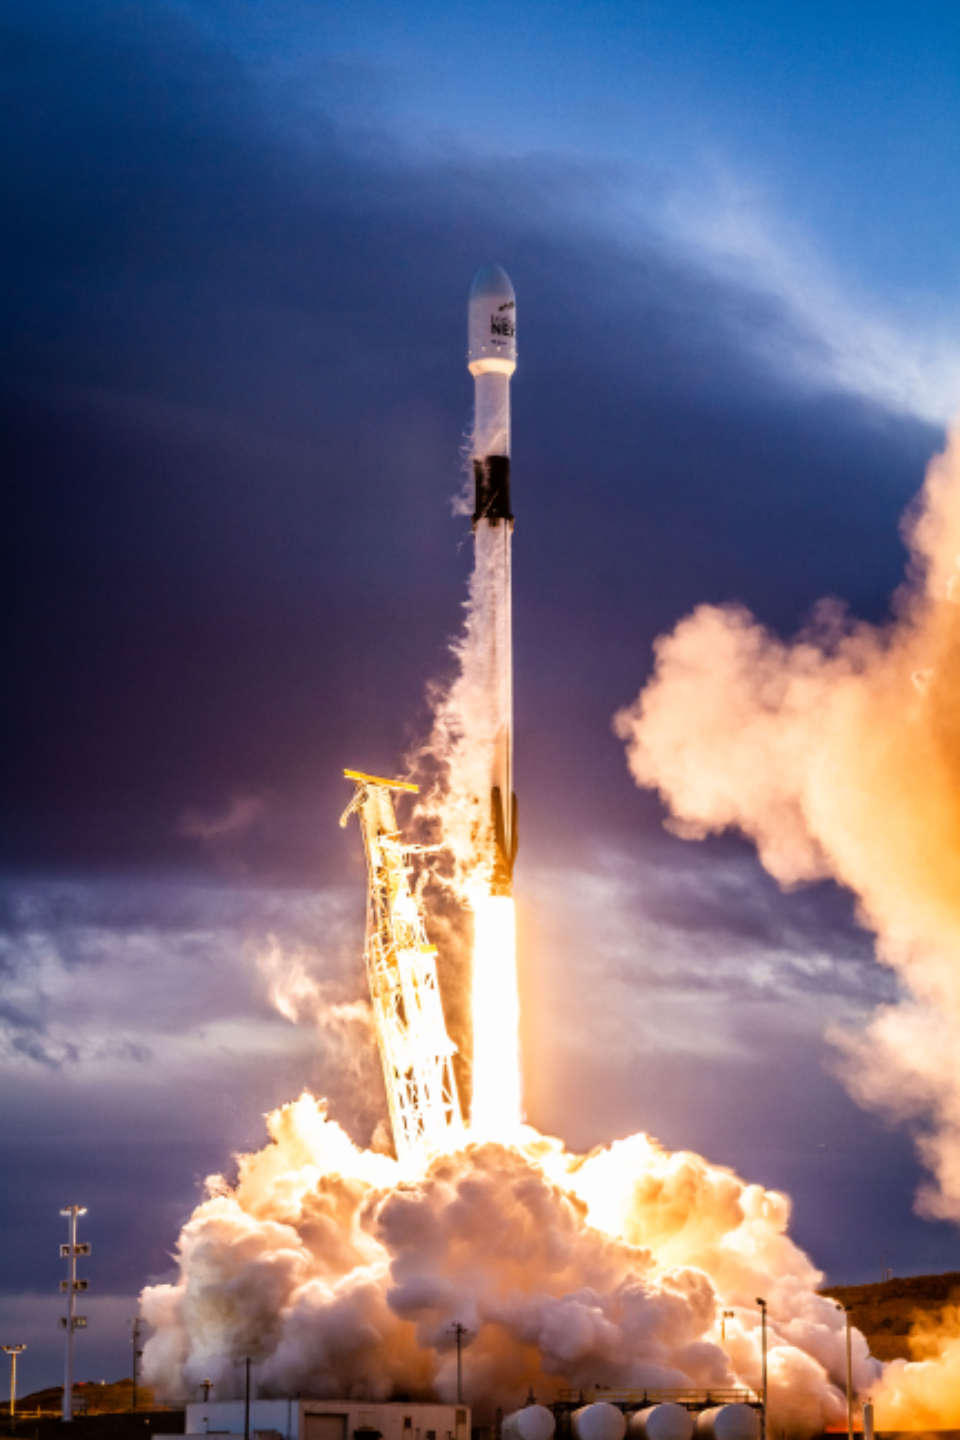 rocket liftoff smoke takeoff launch technology science exploration travel fire sky clouds spacex